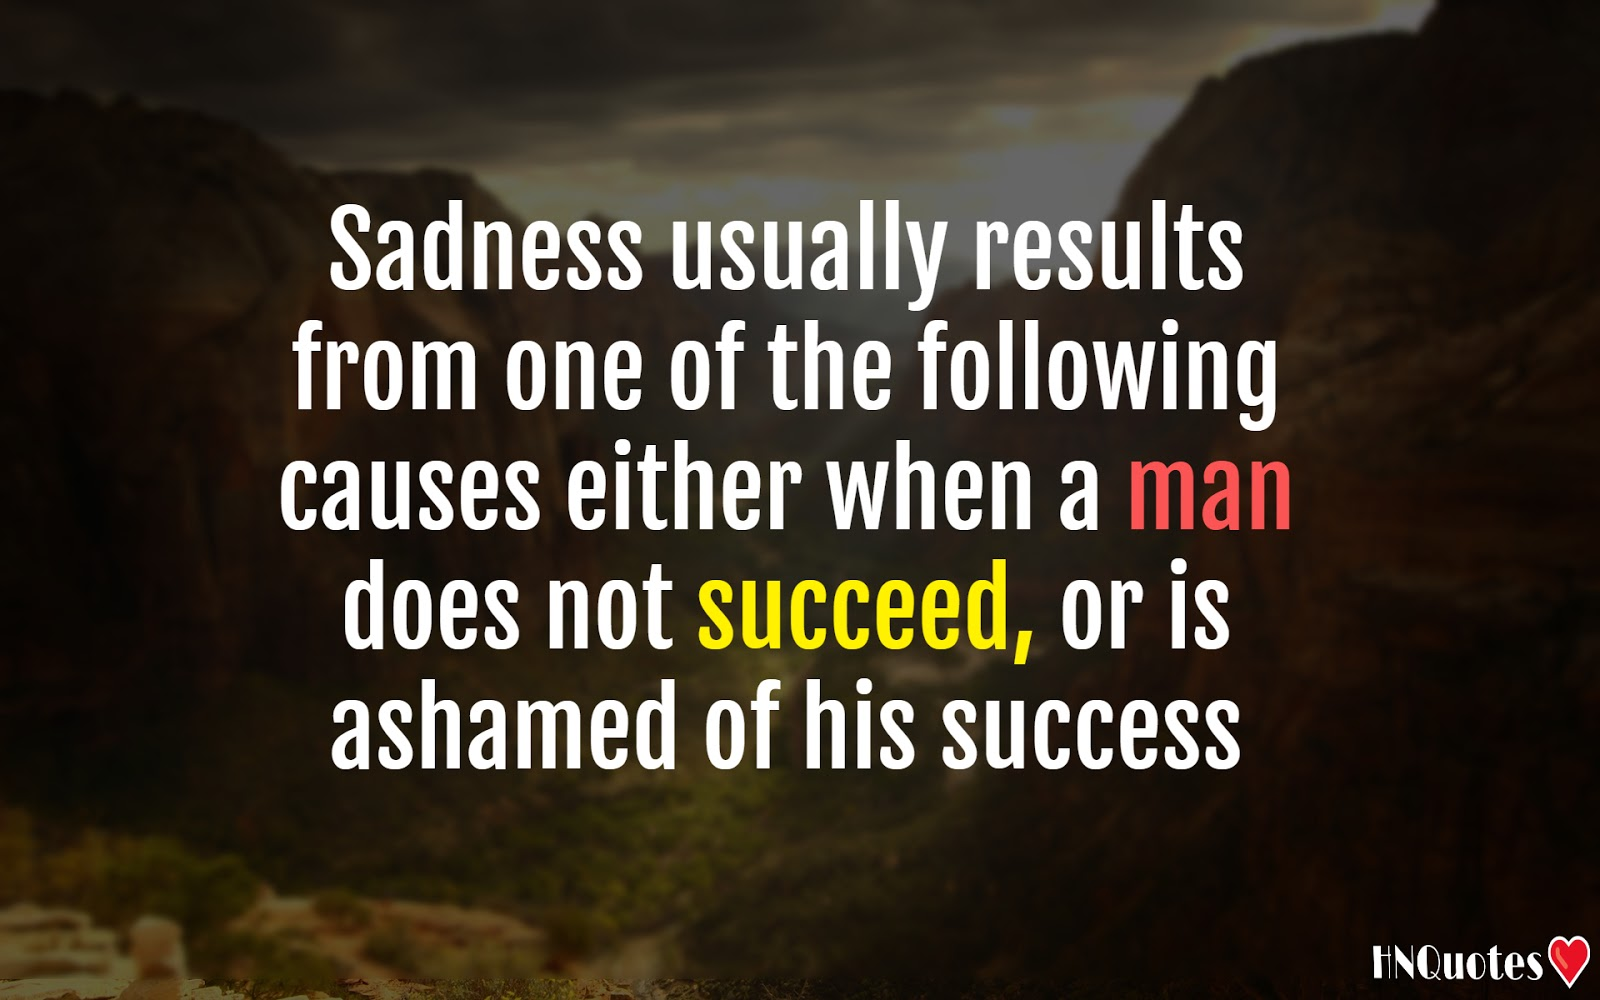 Sad-&-Emotional-Quotes-on-Life-70-Best-Emotional-Quotes[HNQuotes]